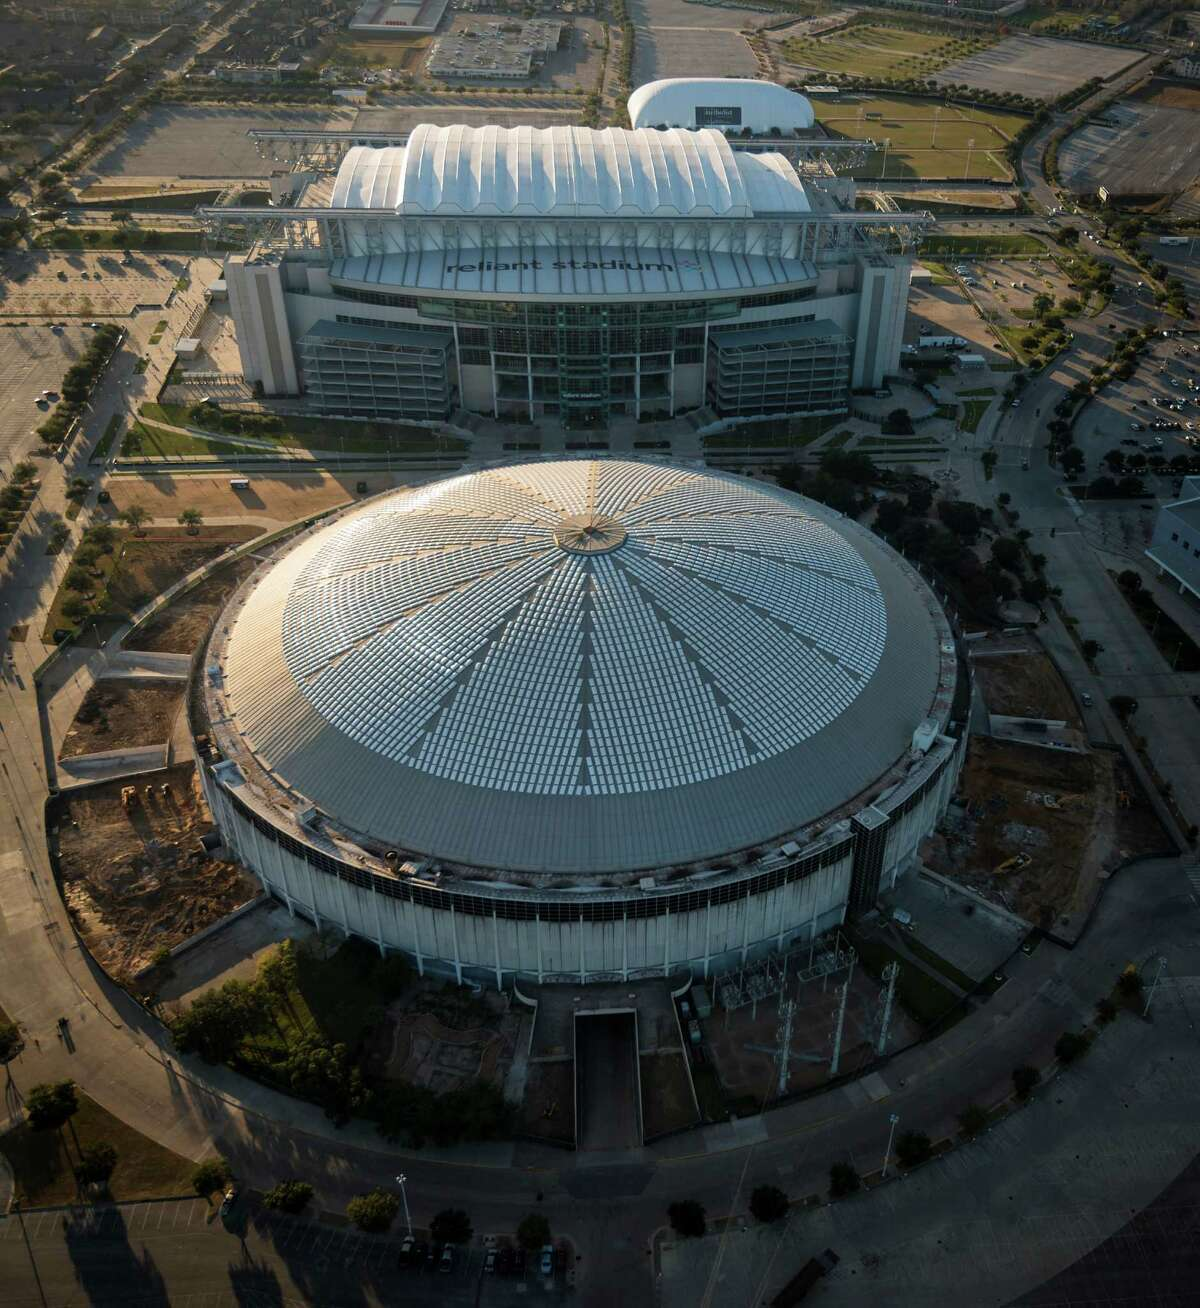 If preservationists are triumphant, the Reliant Astrodome - seen here with the Reliant Stadium - will be around for future Houstonians to enjoy.